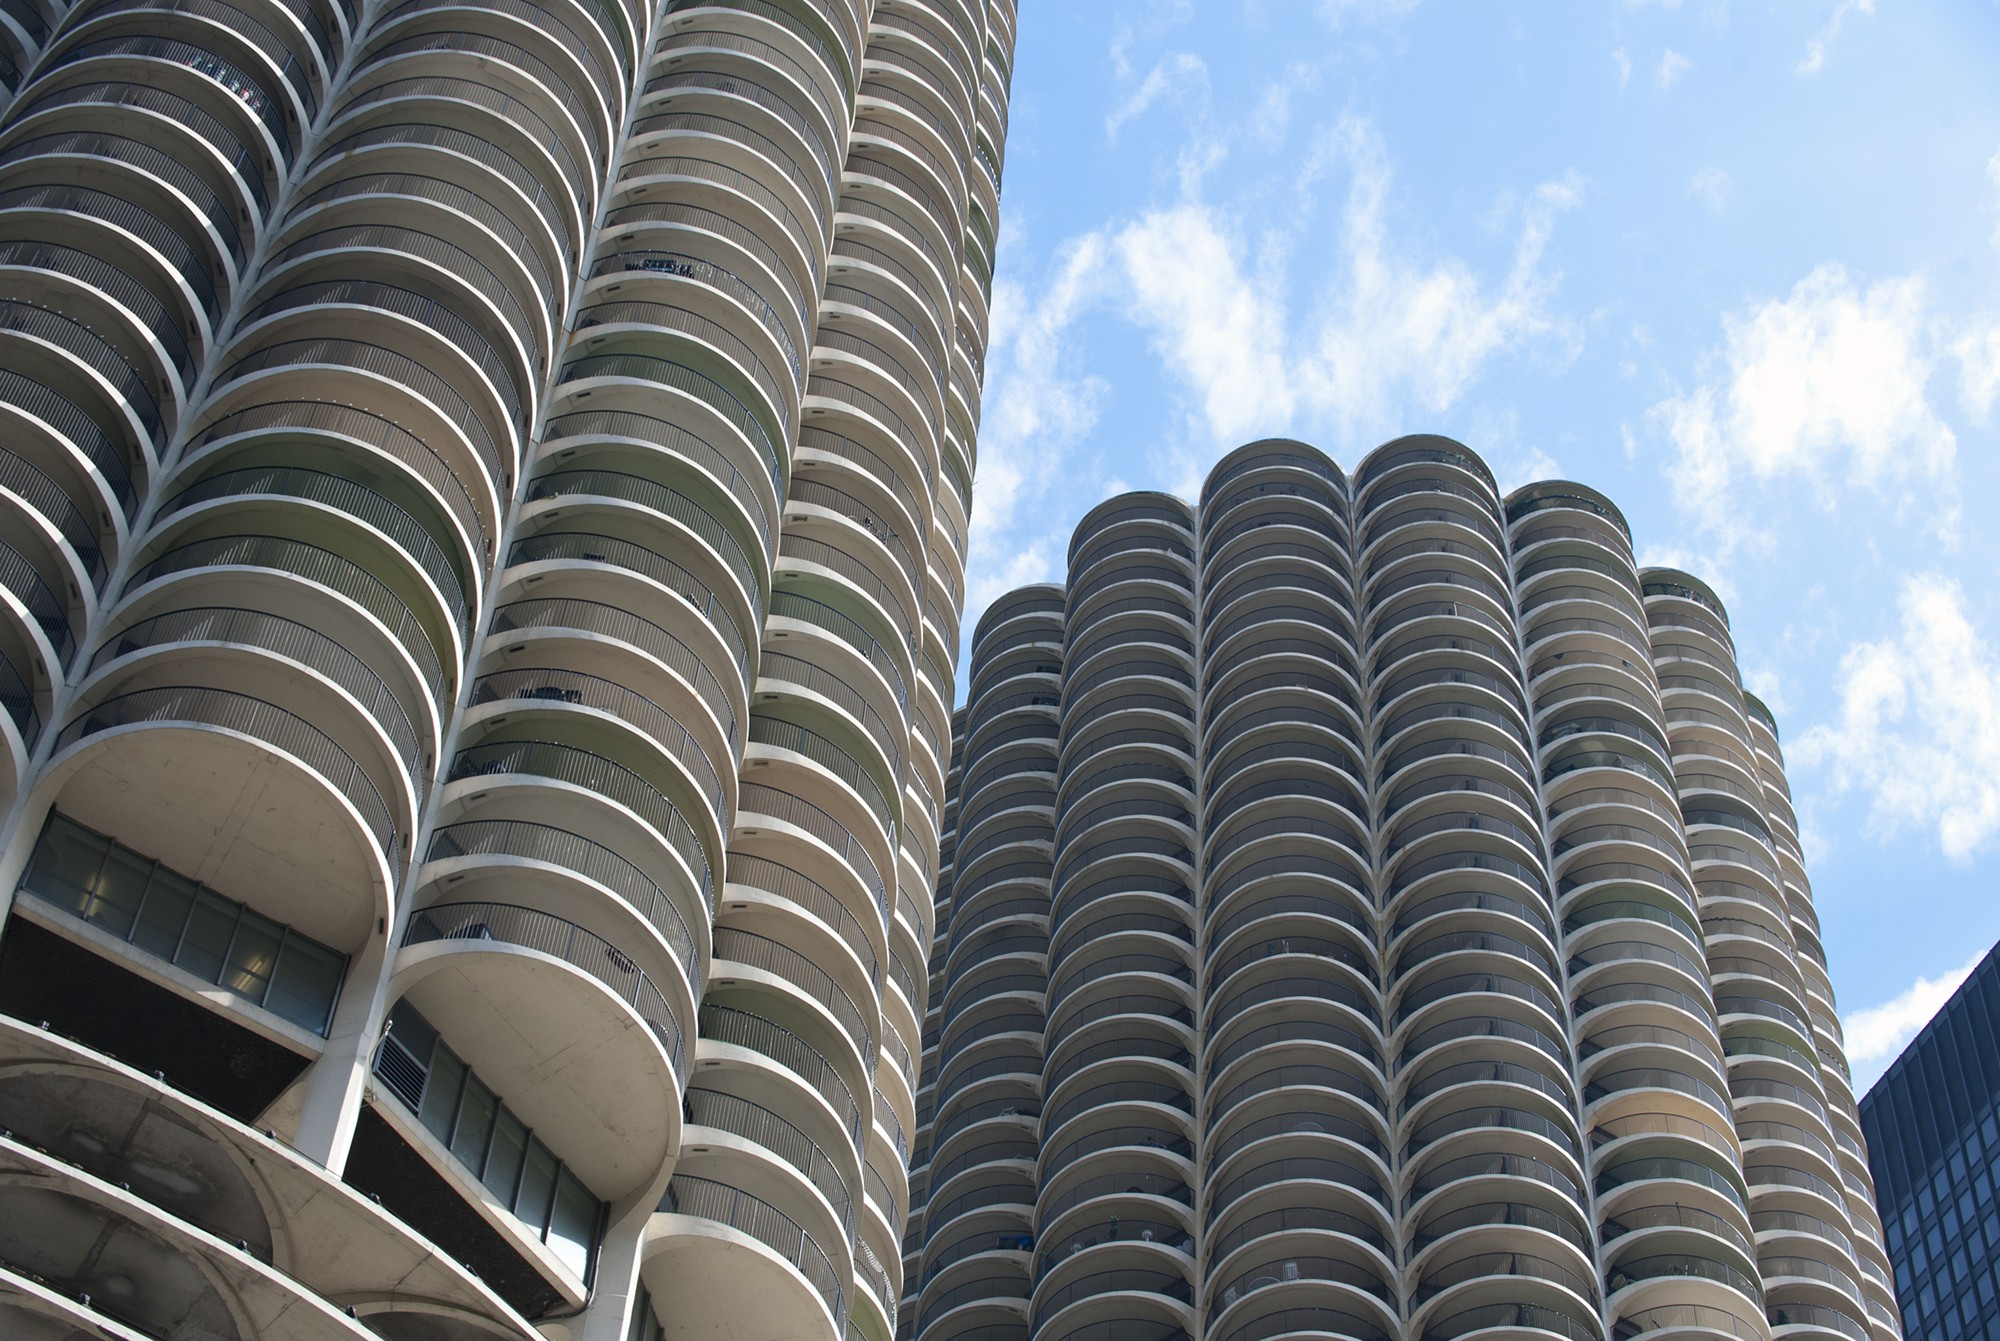 Marina City · Buildings Of Chicago · Chicago Architecture